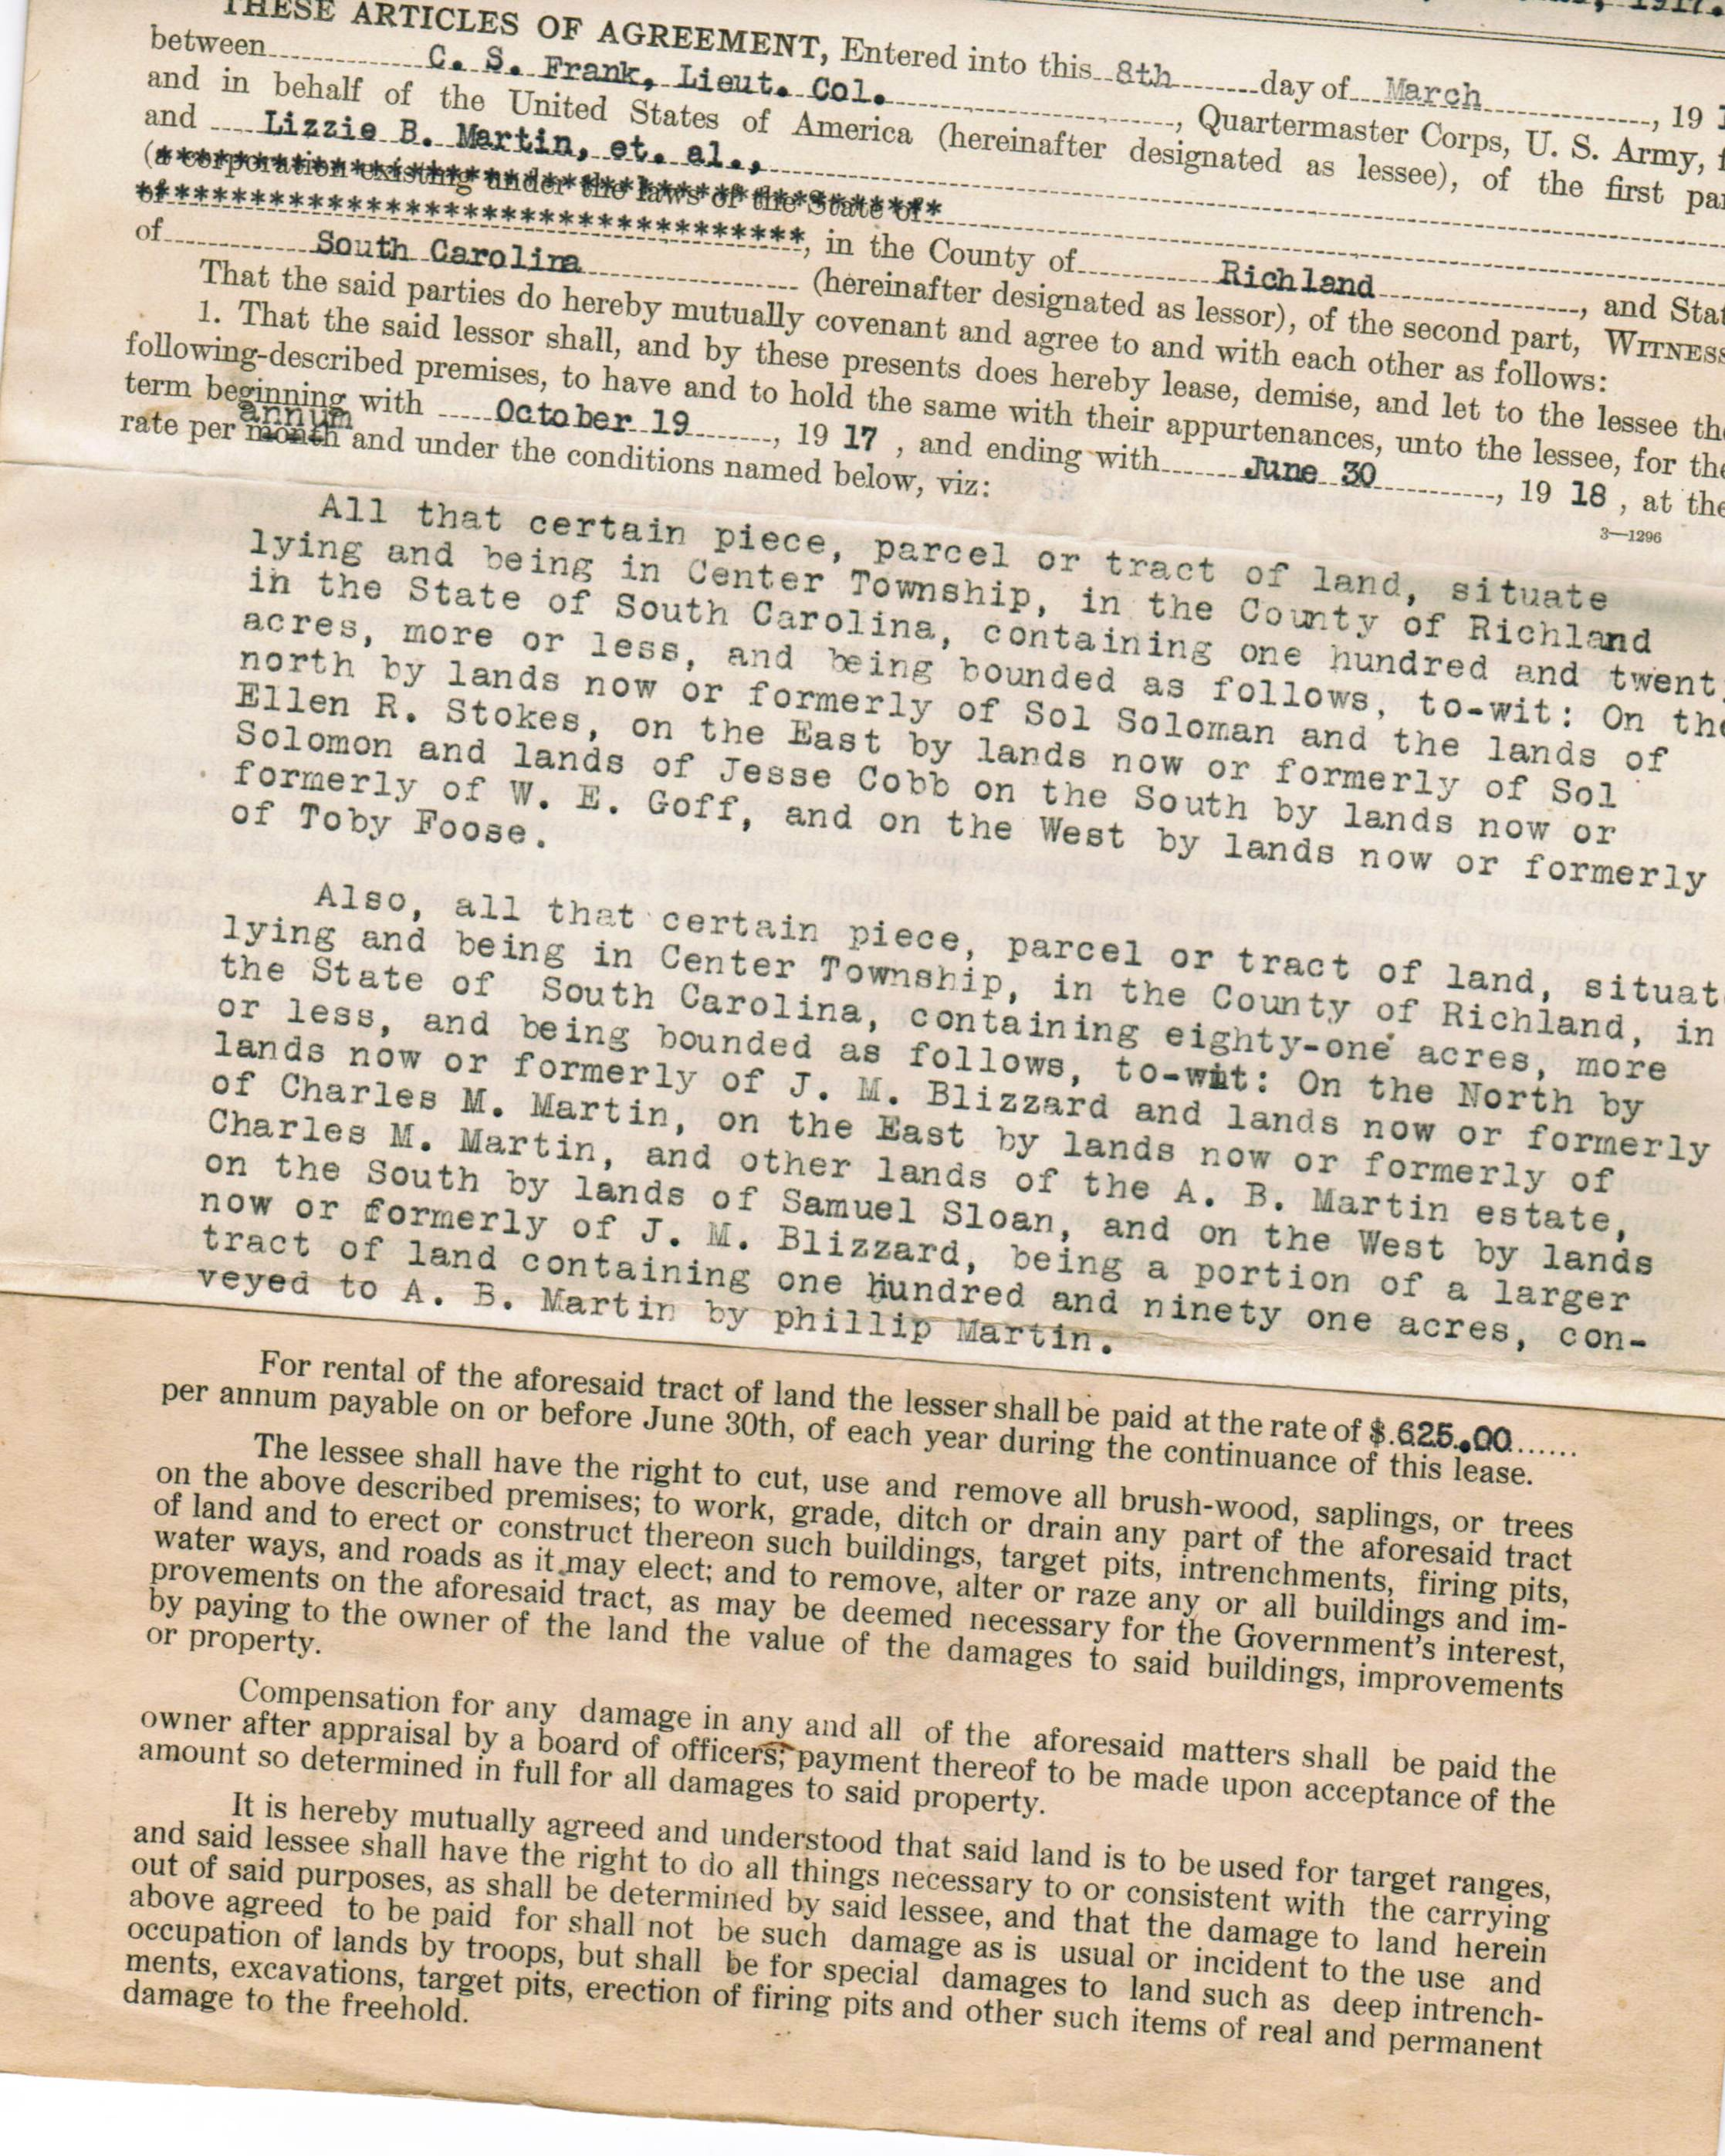 Scan of a portion of a page. Part is a form, and part of it is typed. The paper is yellowed with age.